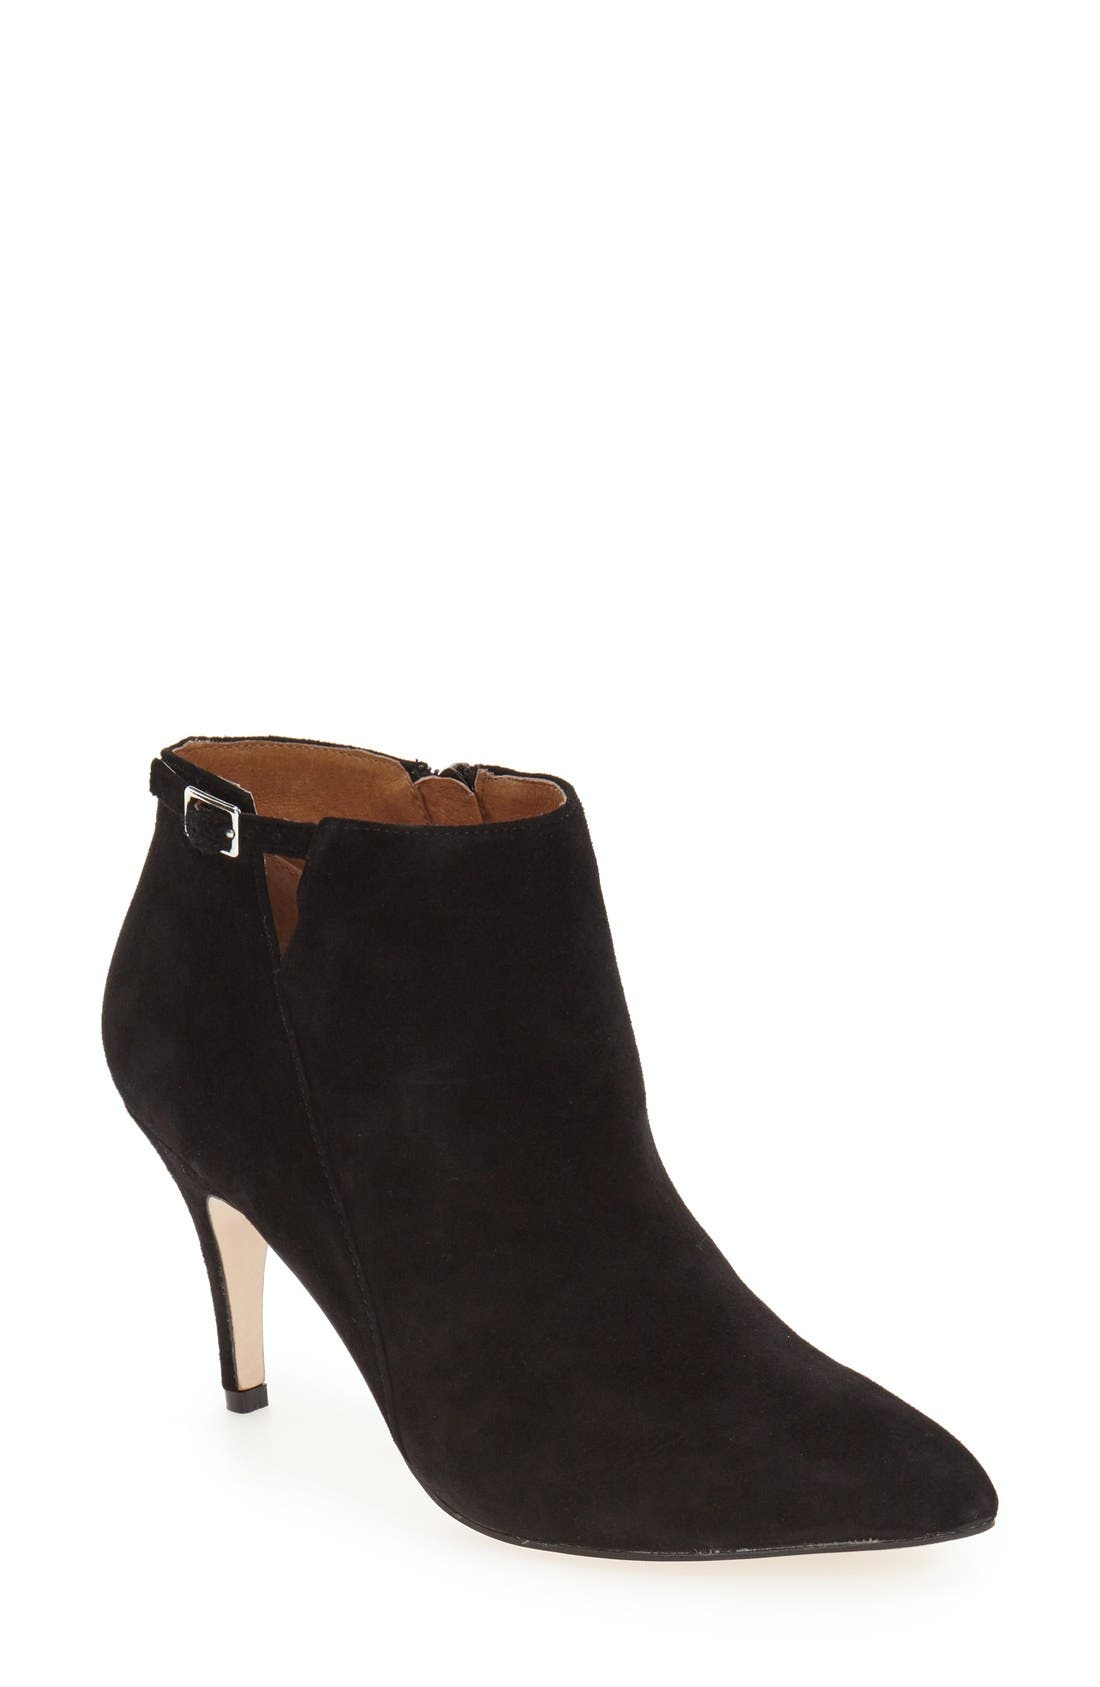 'Roster' Pointy Toe Bootie,                         Main,                         color, Black Suede